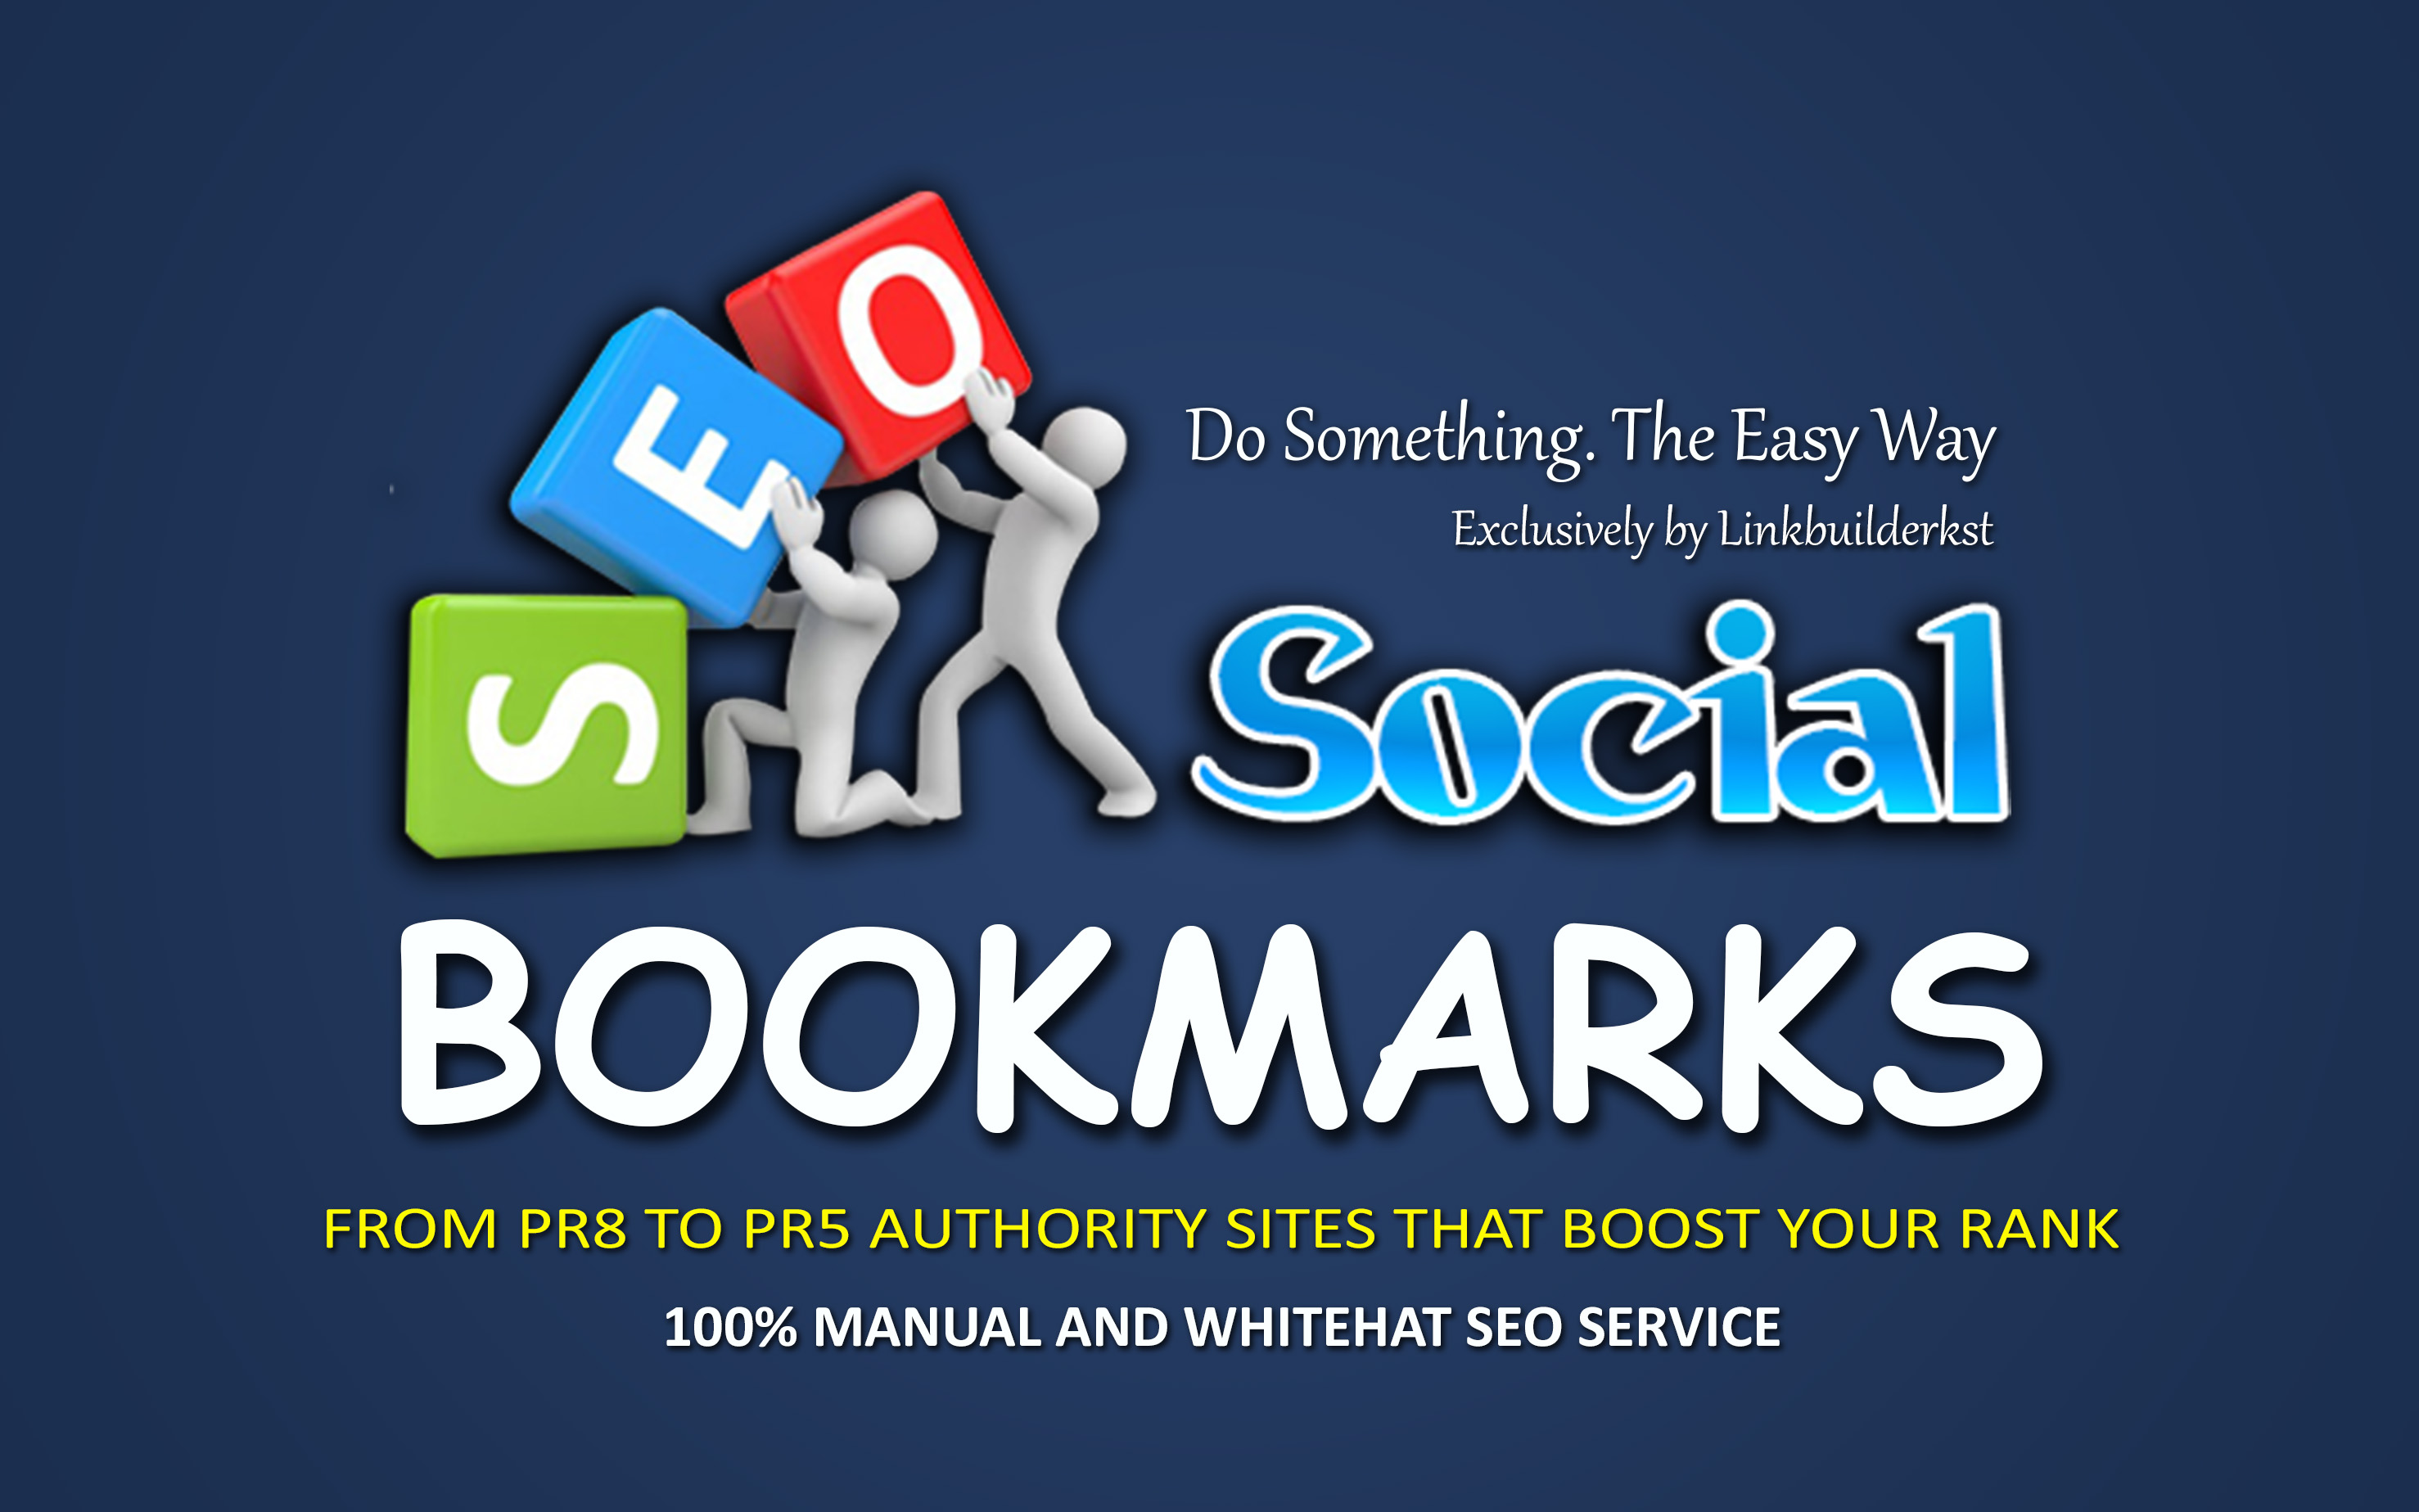 30 Authority Manual Social Bookmarking